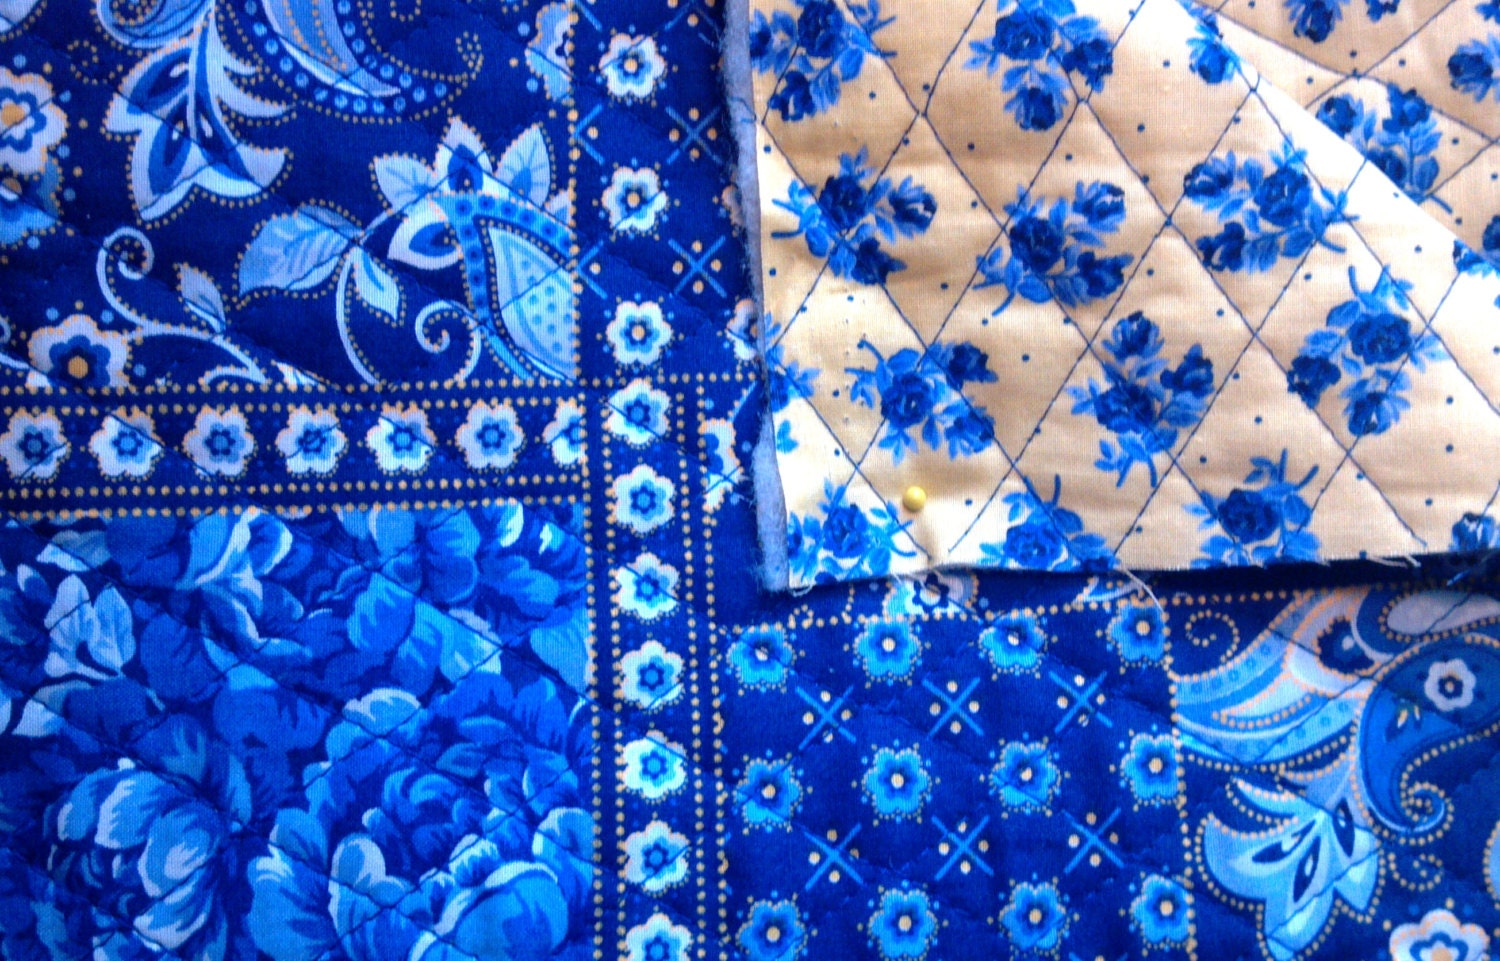 Quilted Fabric Blue Double sided qu...